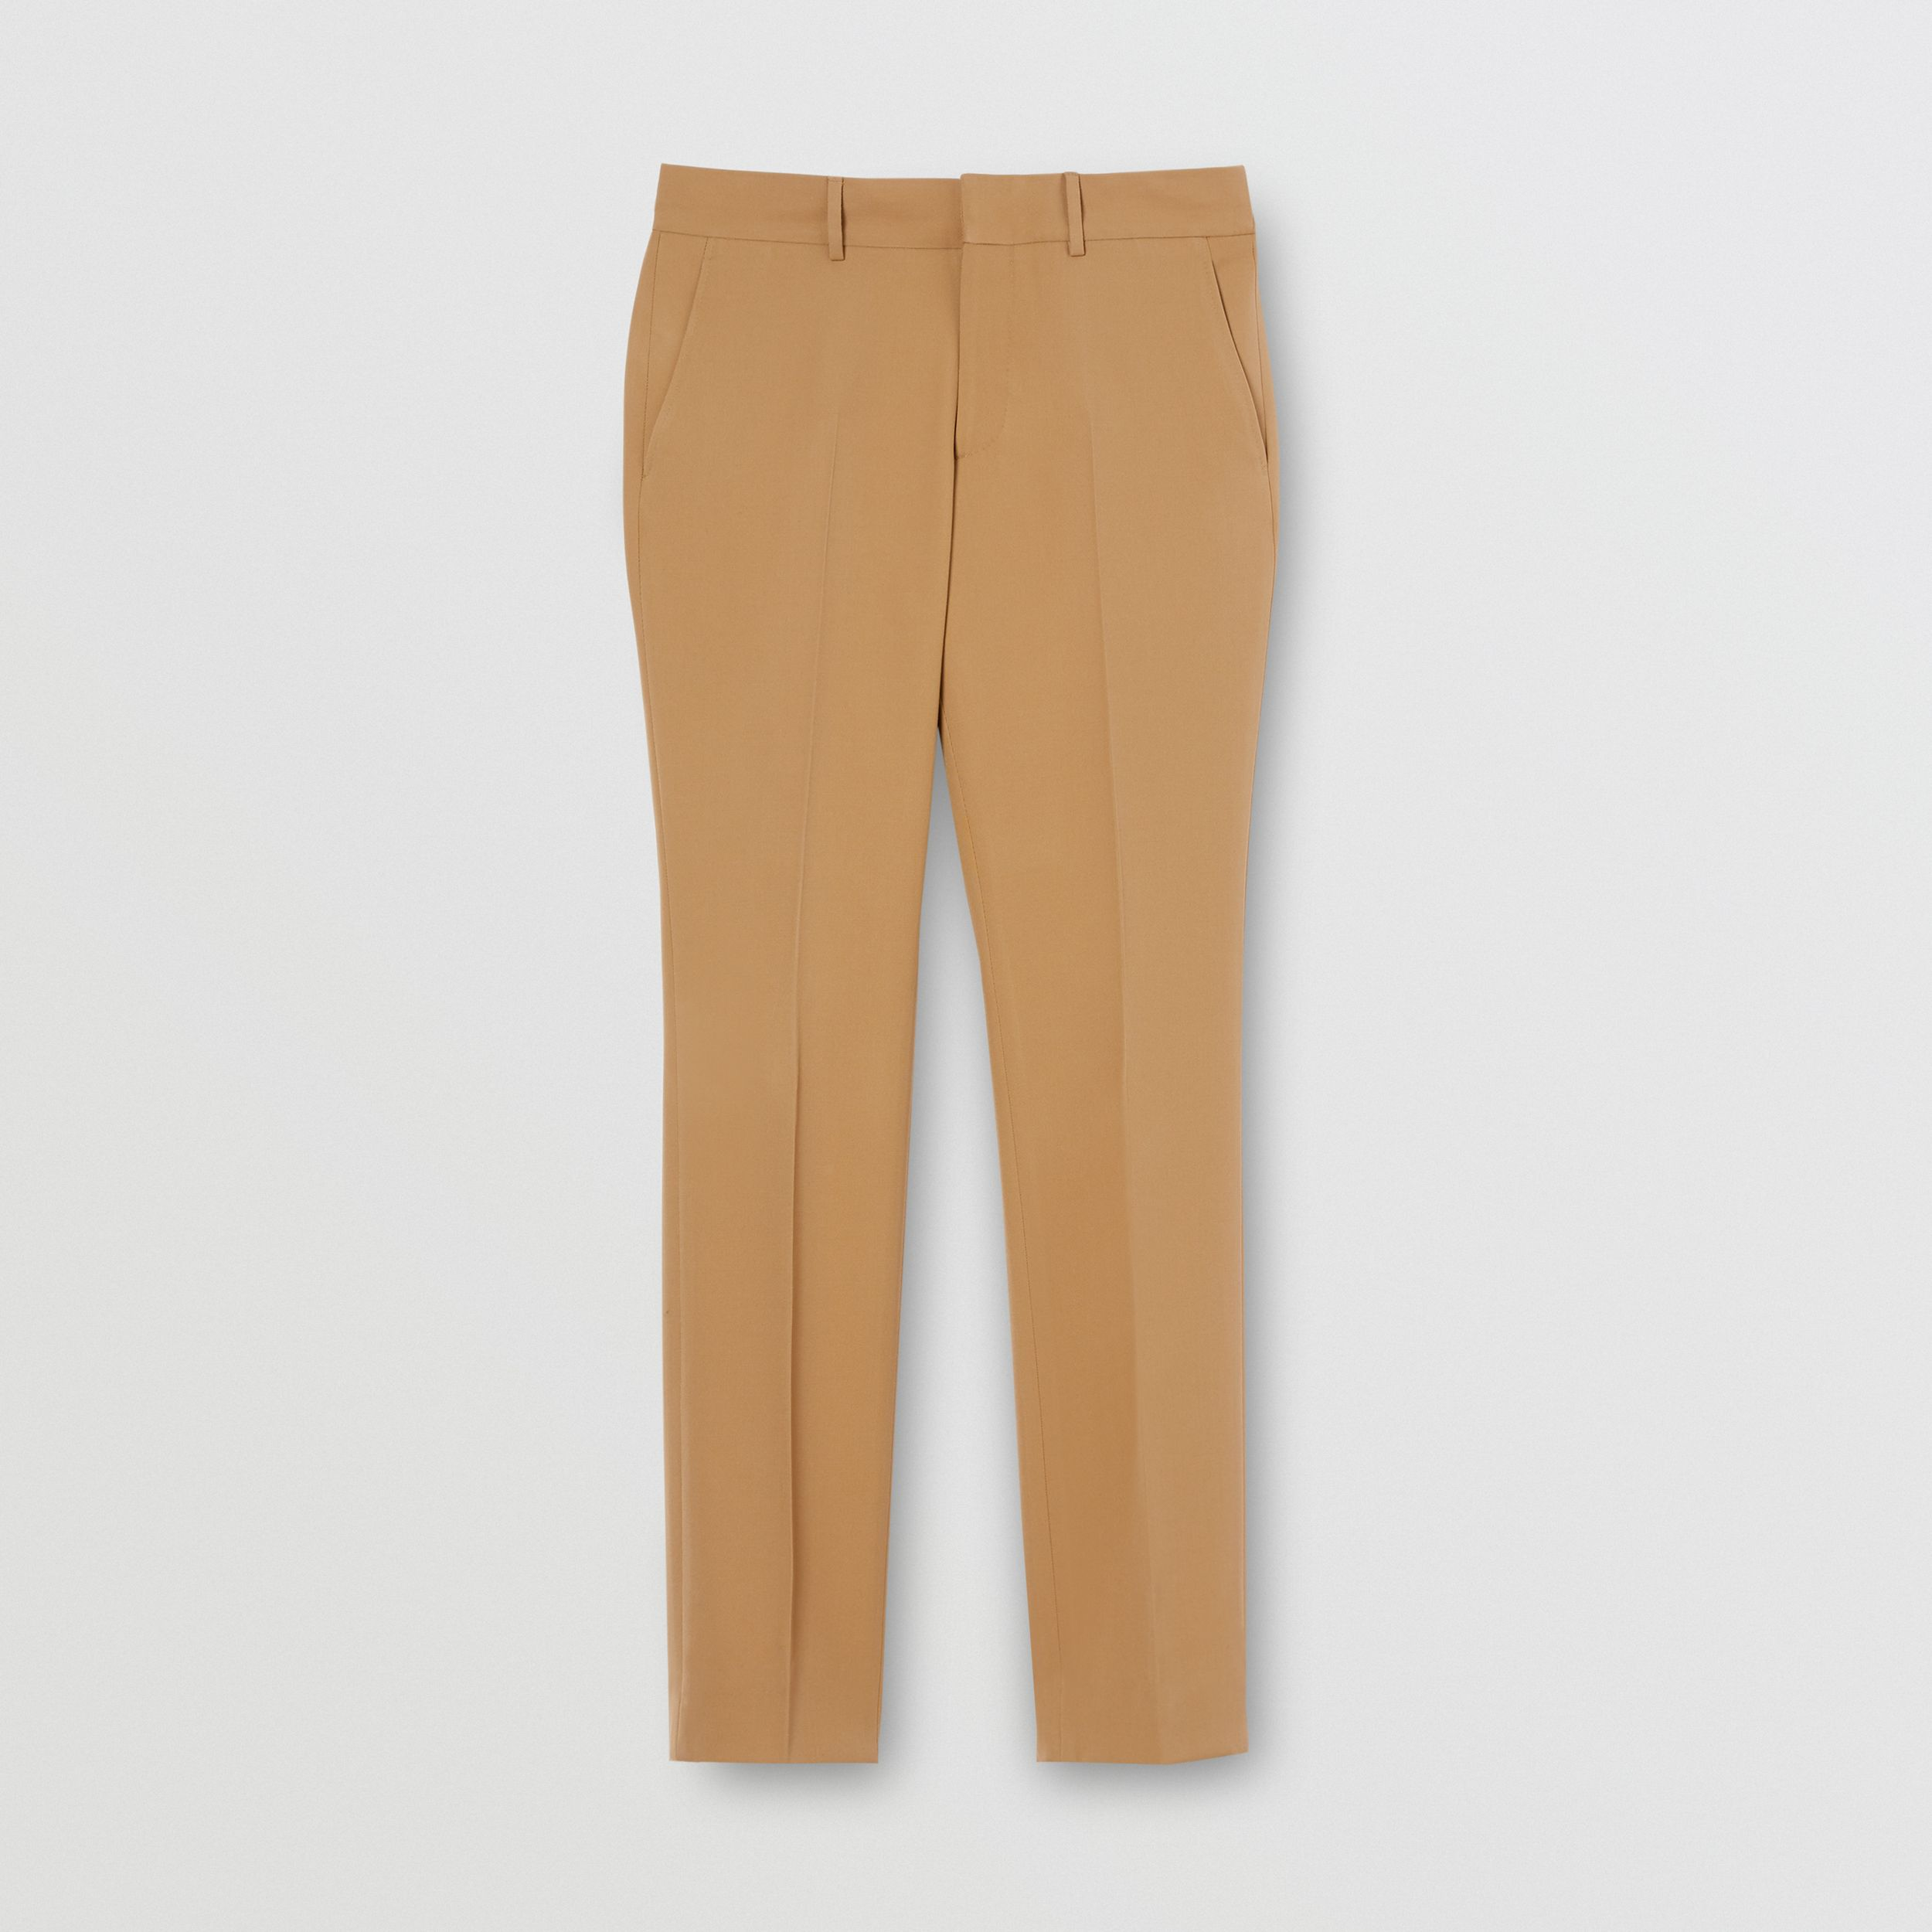 Dry Wool Twill Tailored Trousers in Dark Tan - Men | Burberry - 4